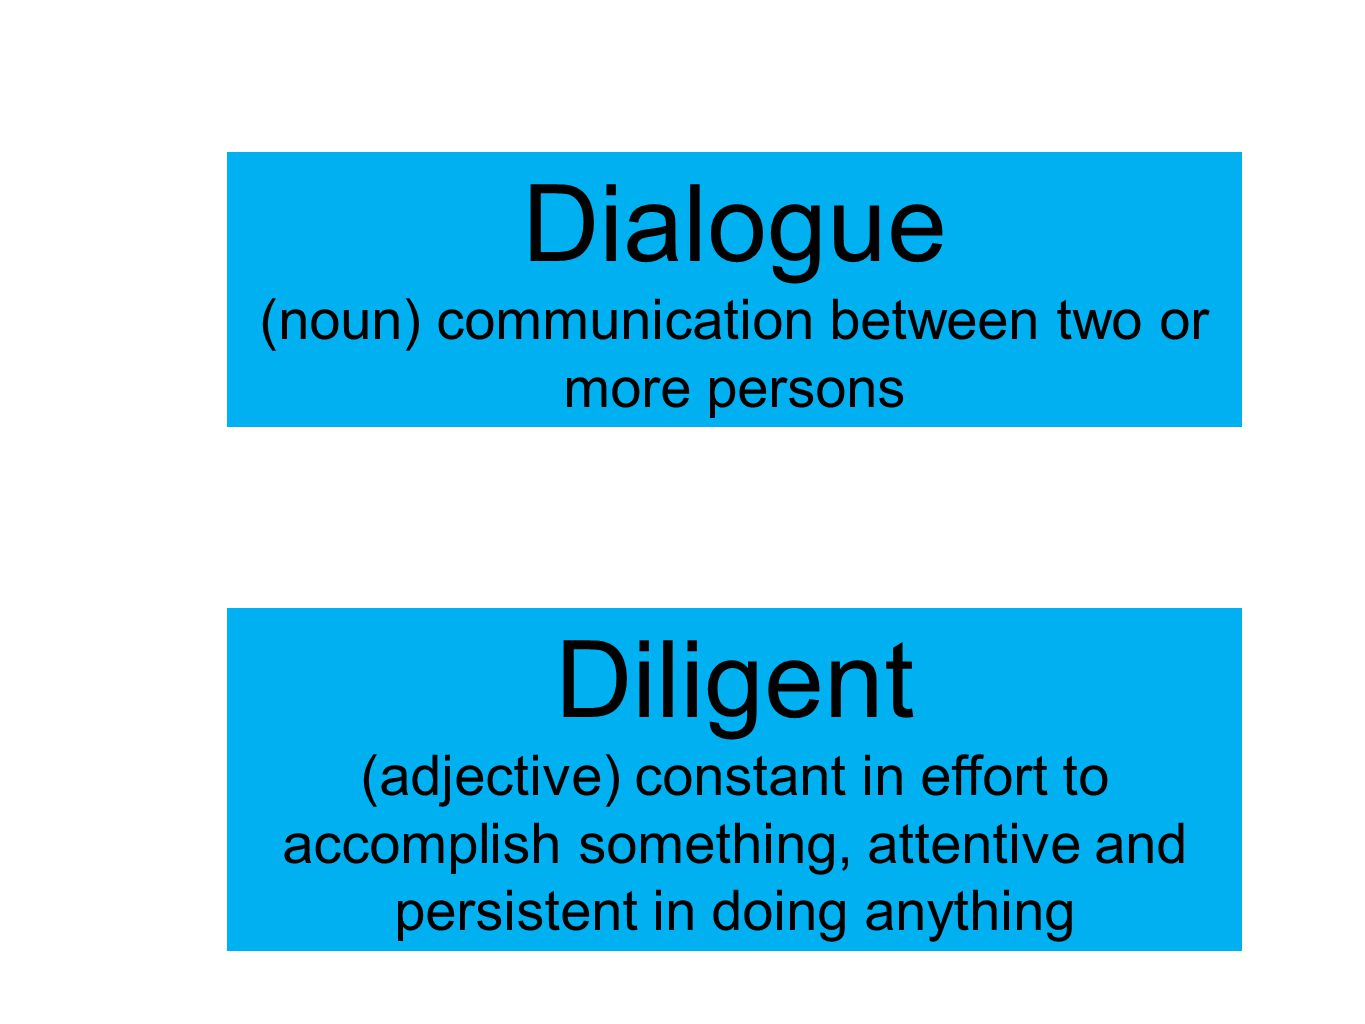 Dialogue (noun) communication between two or more persons Diligent (adjective) constant in effort to accomplish something, attentive and persistent in